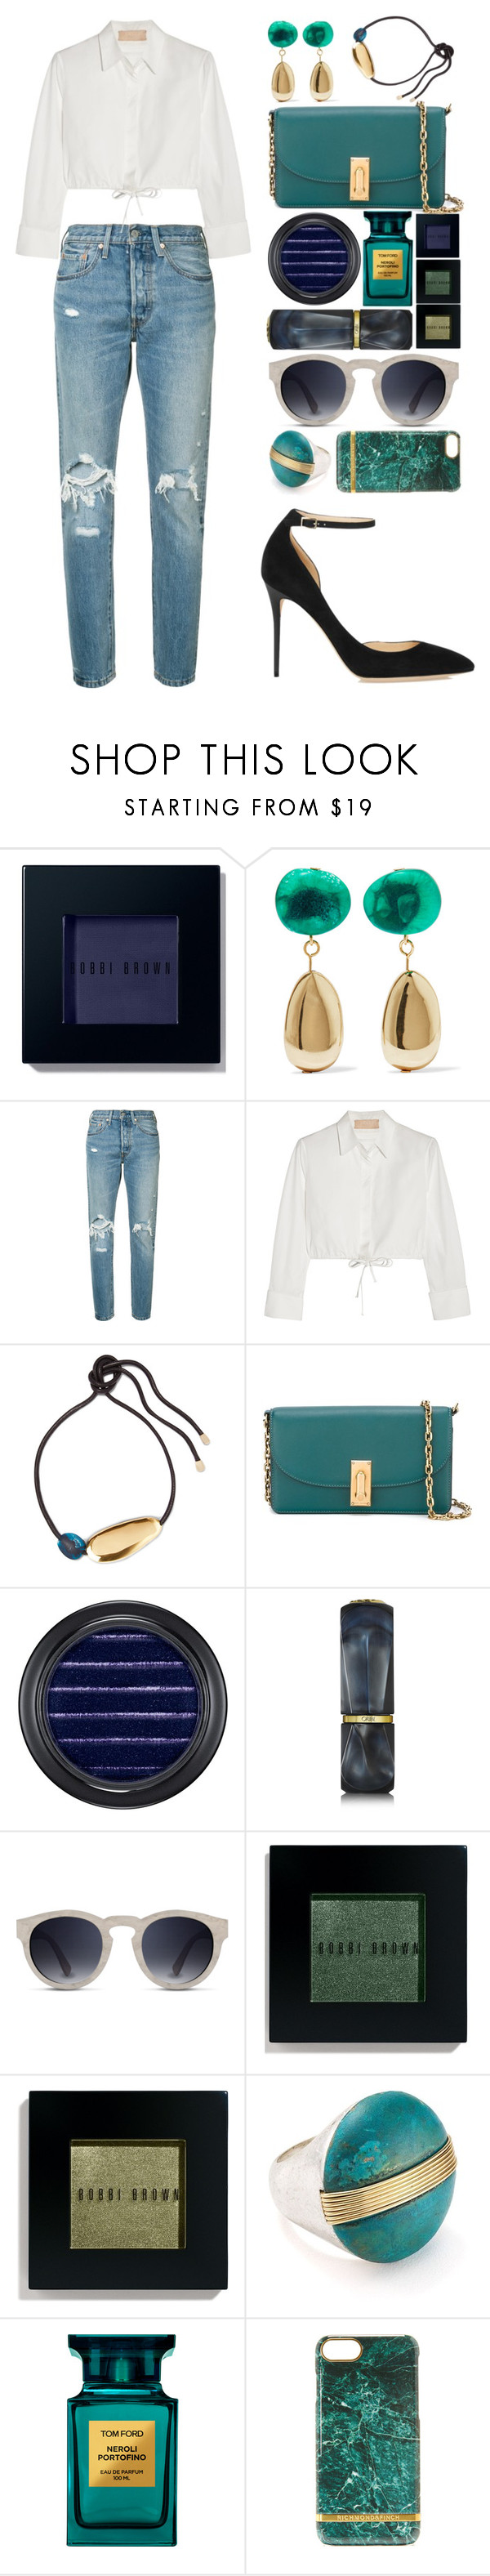 """""""#074"""" by theevilraccoon ❤ liked on Polyvore featuring Bobbi Brown Cosmetics, Dinosaur Designs, Levi's, Alaïa, Marc Jacobs, MAC Cosmetics, Oribe, Robert Lee Morris, Tom Ford and Richmond & Finch"""